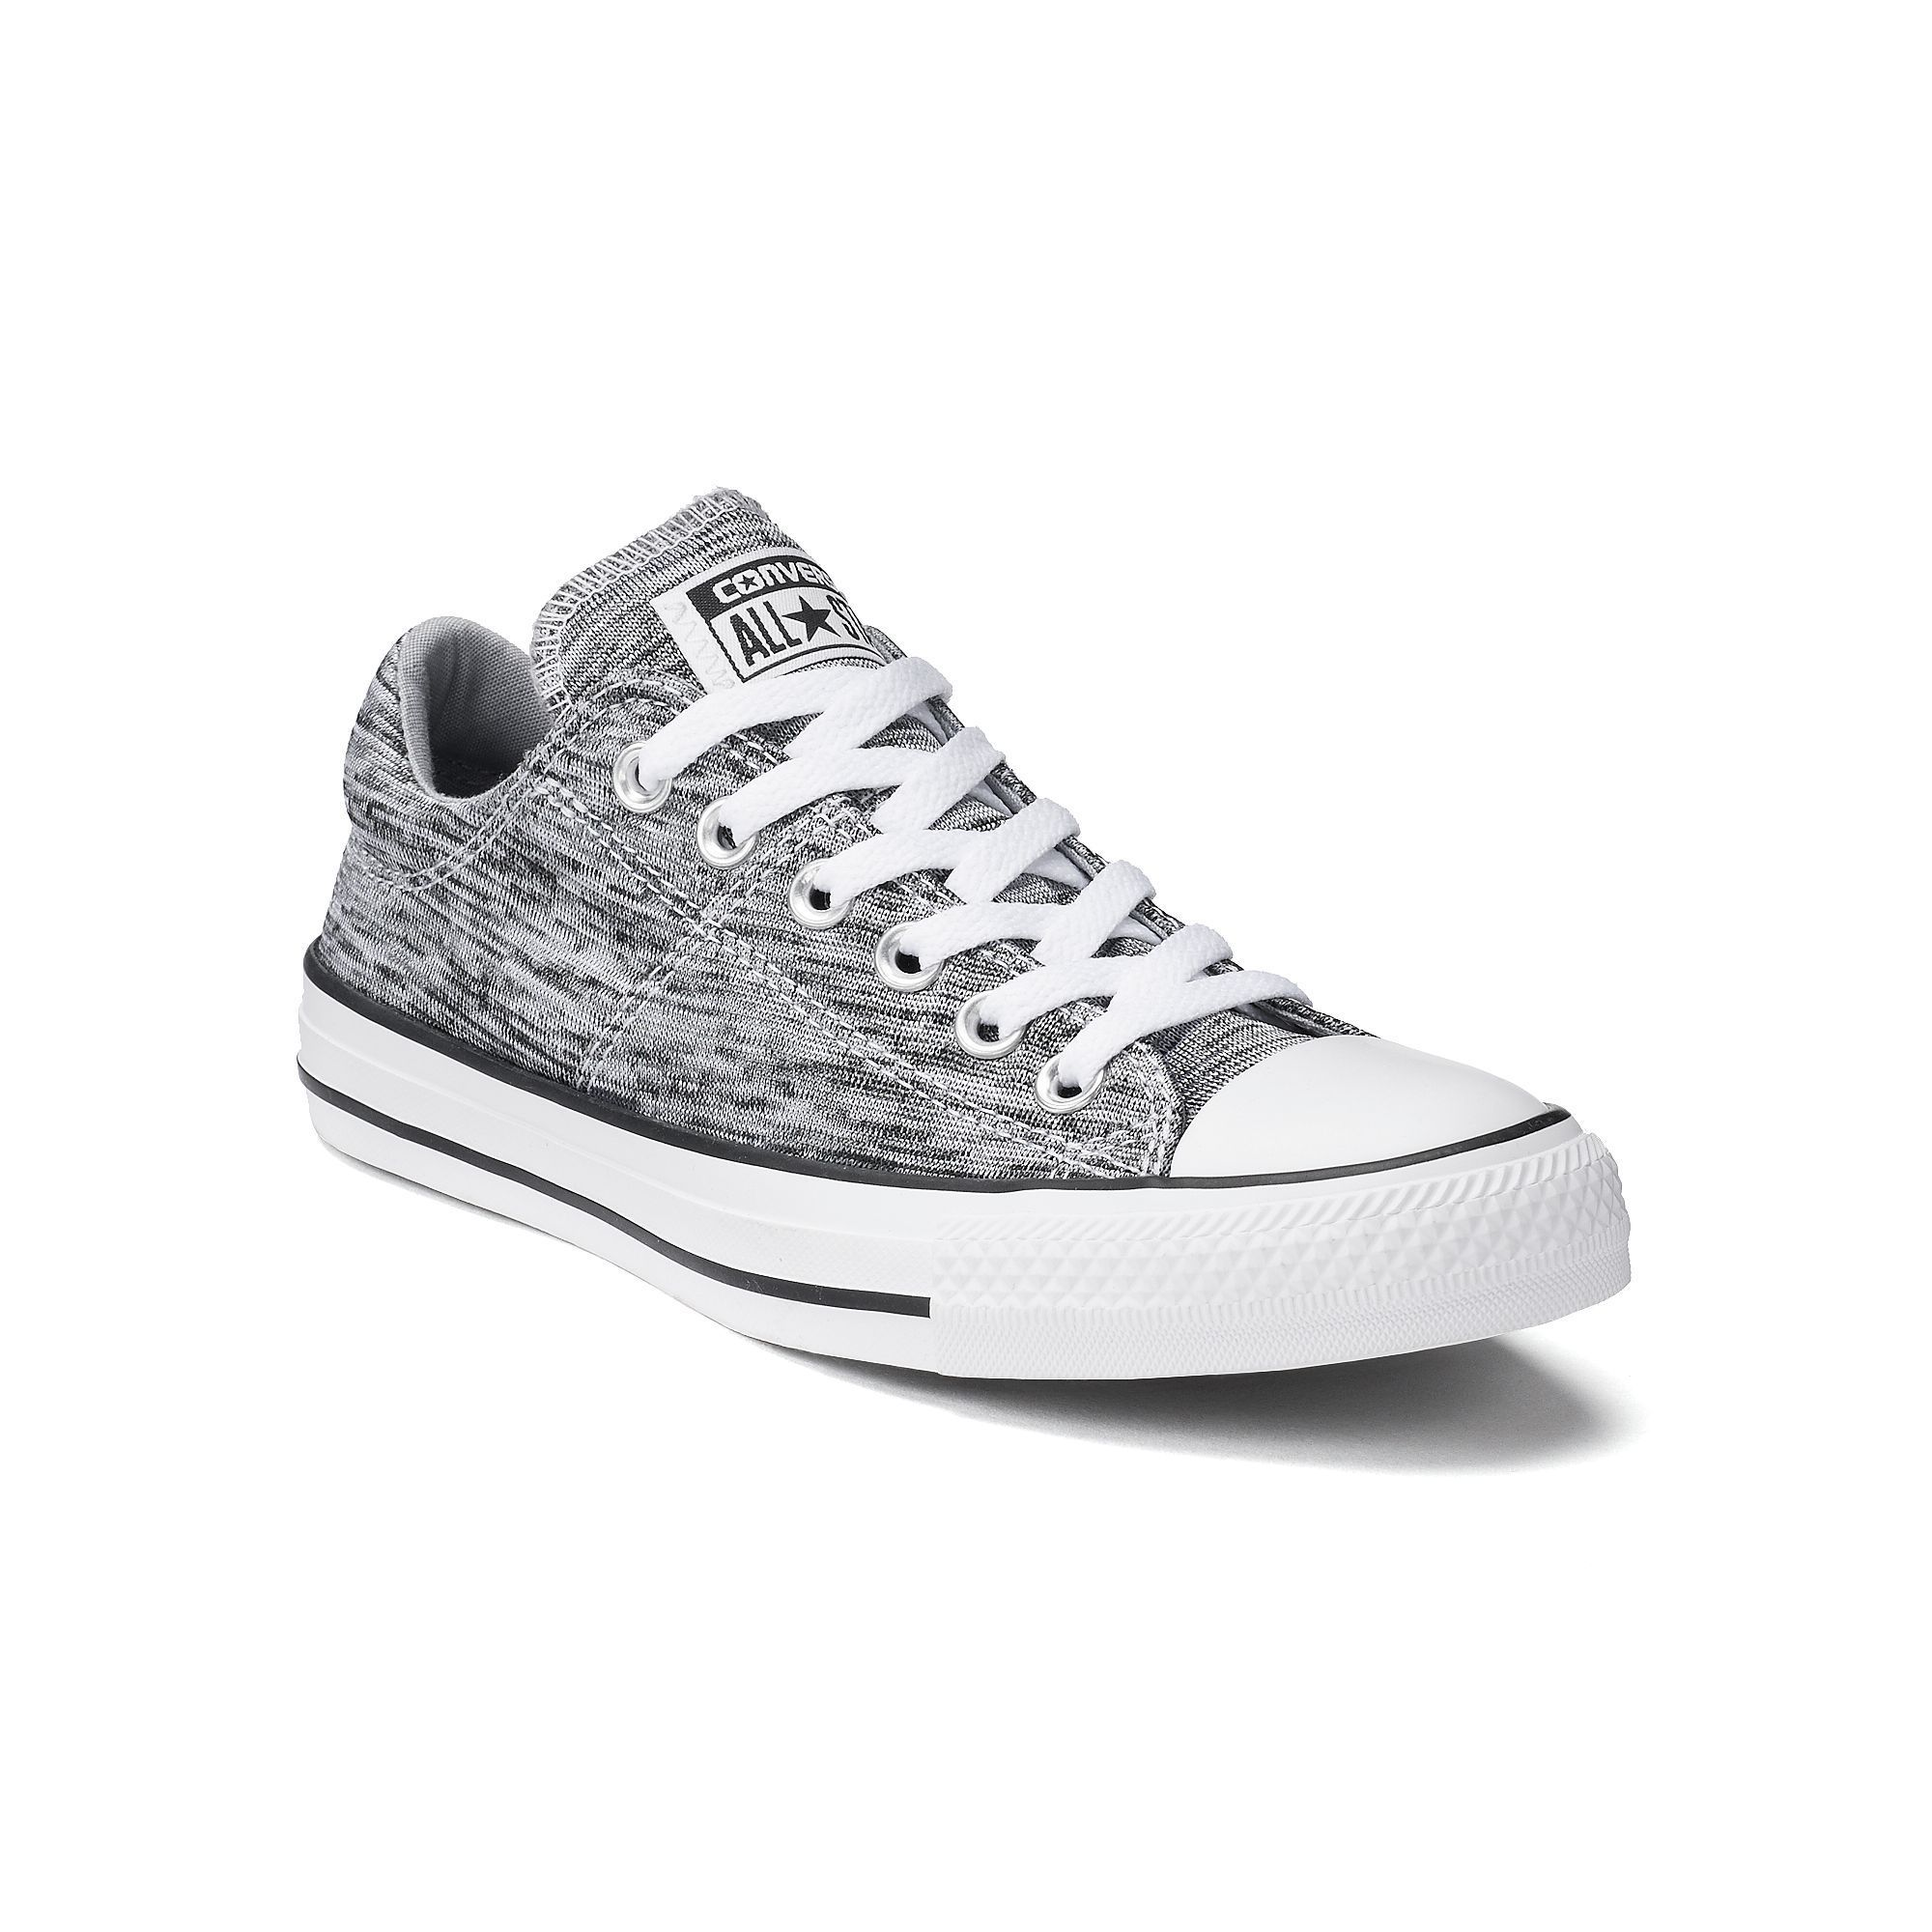 Women's Converse Chuck Taylor All Star Madison Jersey Sneakers